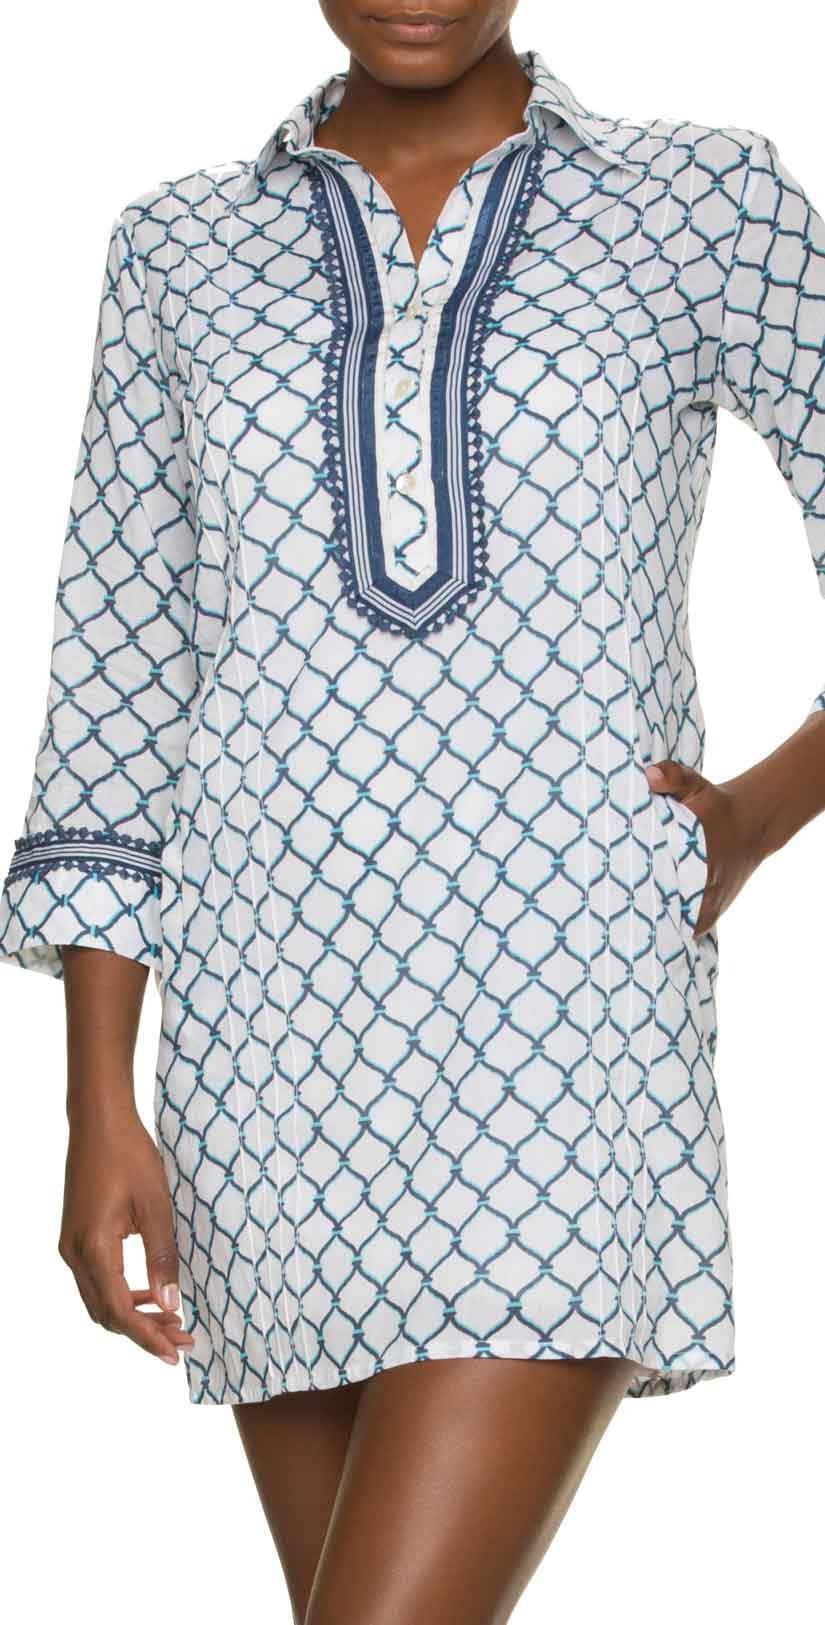 Helen Jon Corona Del Mar Embroidered Essential Shirt Dress: